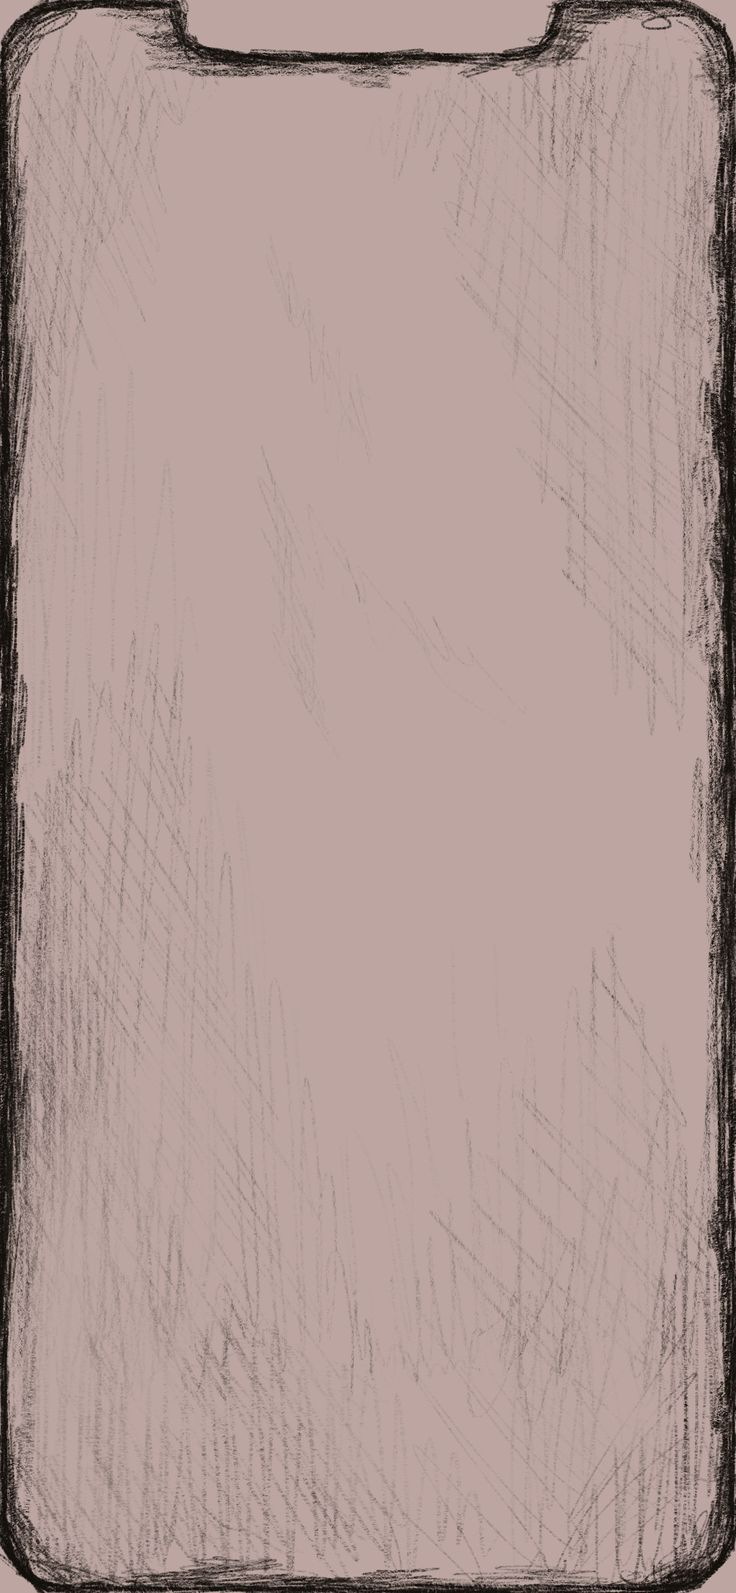 Sketched Border Wallpaper for Xs Max (Four Other Colors)